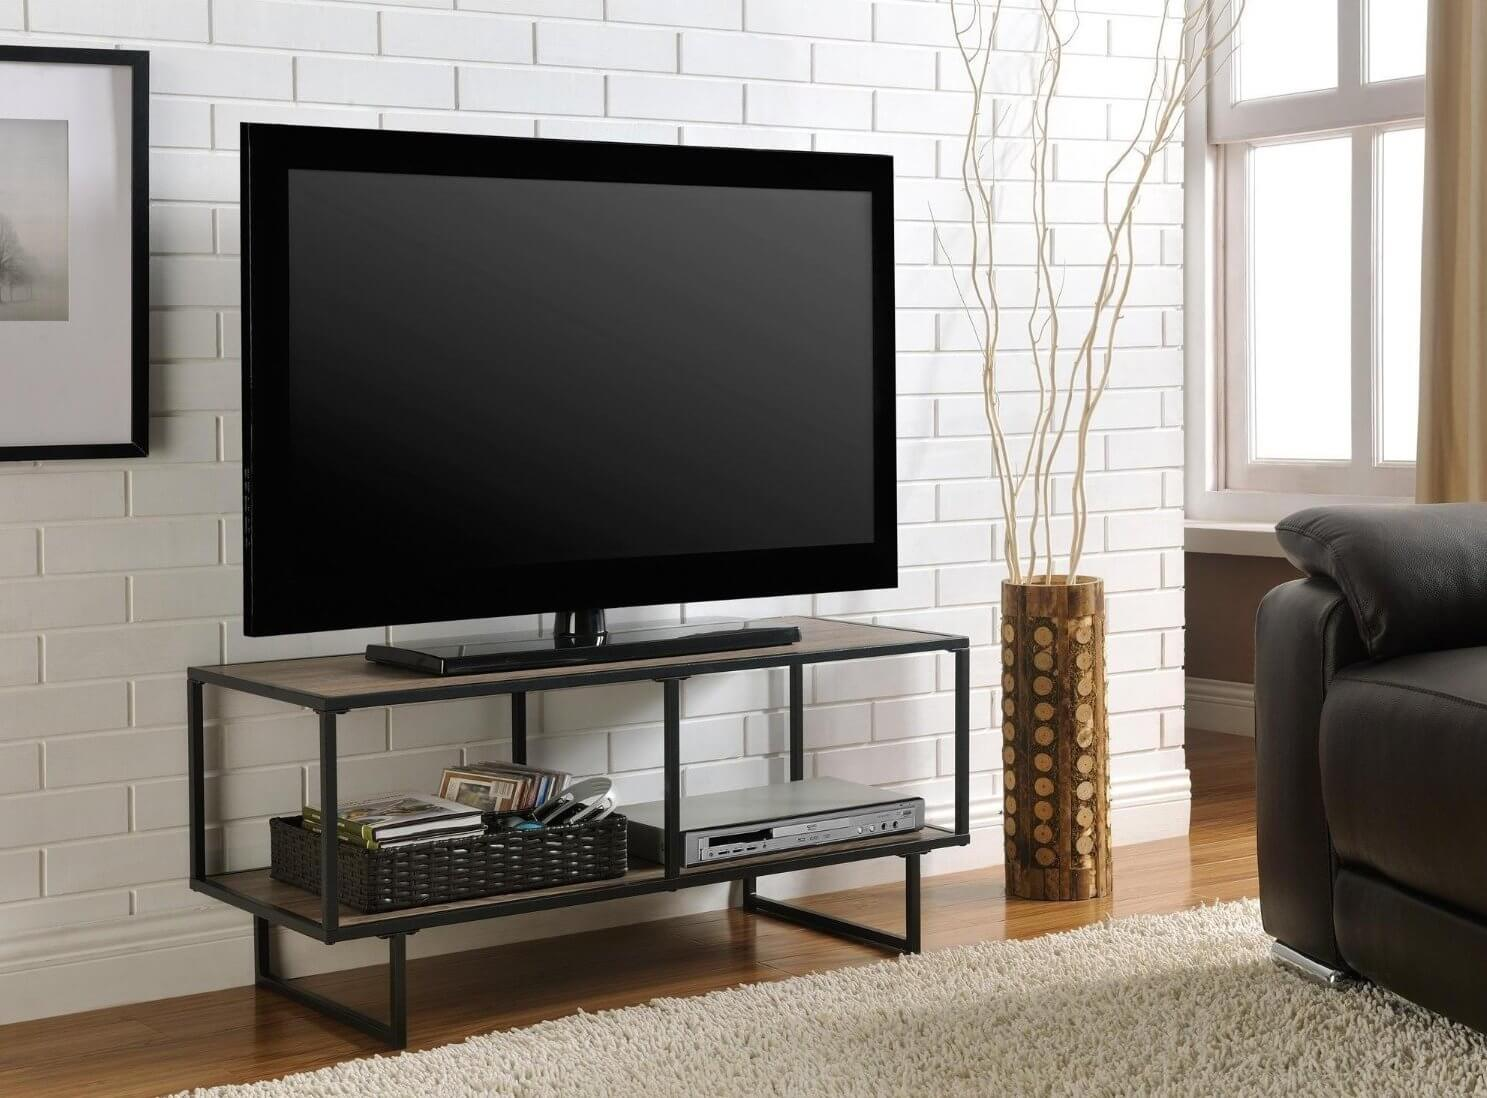 A unique style, industrial is meant to recreate the factory floor visuals of rough, used wood and hard steel. Often appearing in gunmetal and other dark shades, these TV stands will contrast nicely with soft natural toned rooms or blend in perfectly in loft style spaces.